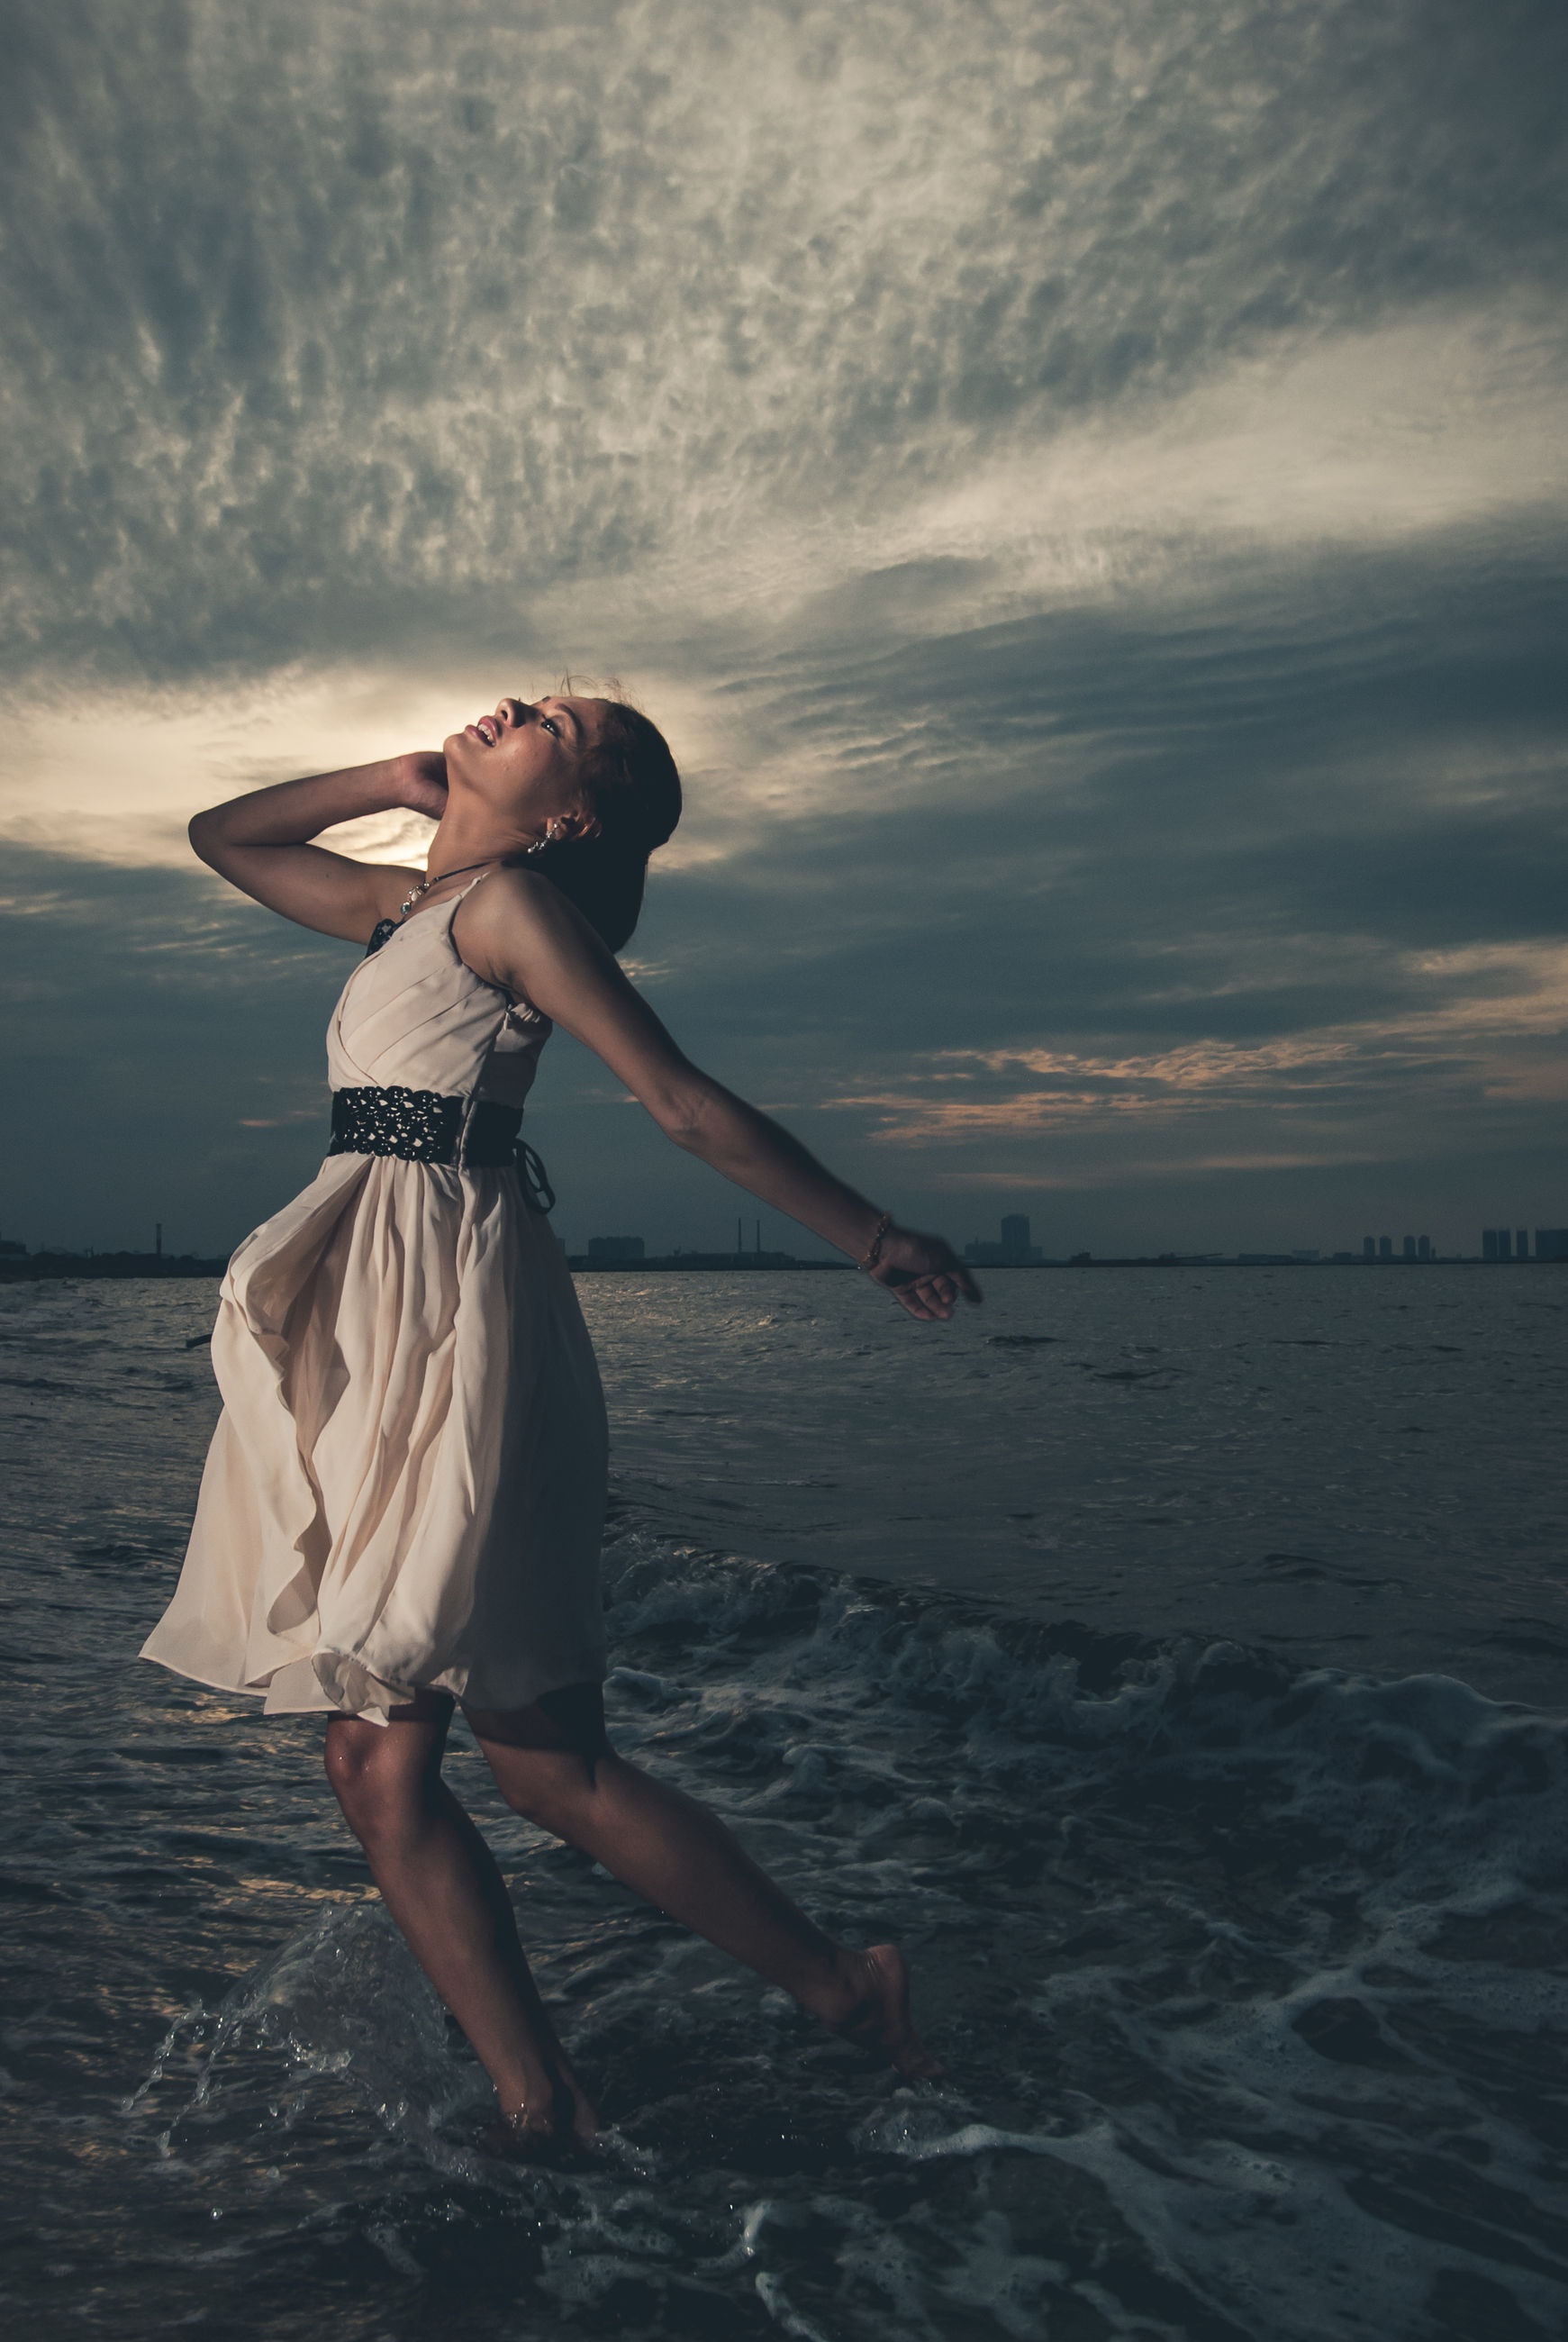 sea, water, one person, sky, cloud - sky, sunset, women, full length, young women, land, real people, young adult, fashion, lifestyles, beach, clothing, leisure activity, adult, beauty in nature, outdoors, horizon over water, beautiful woman, hairstyle